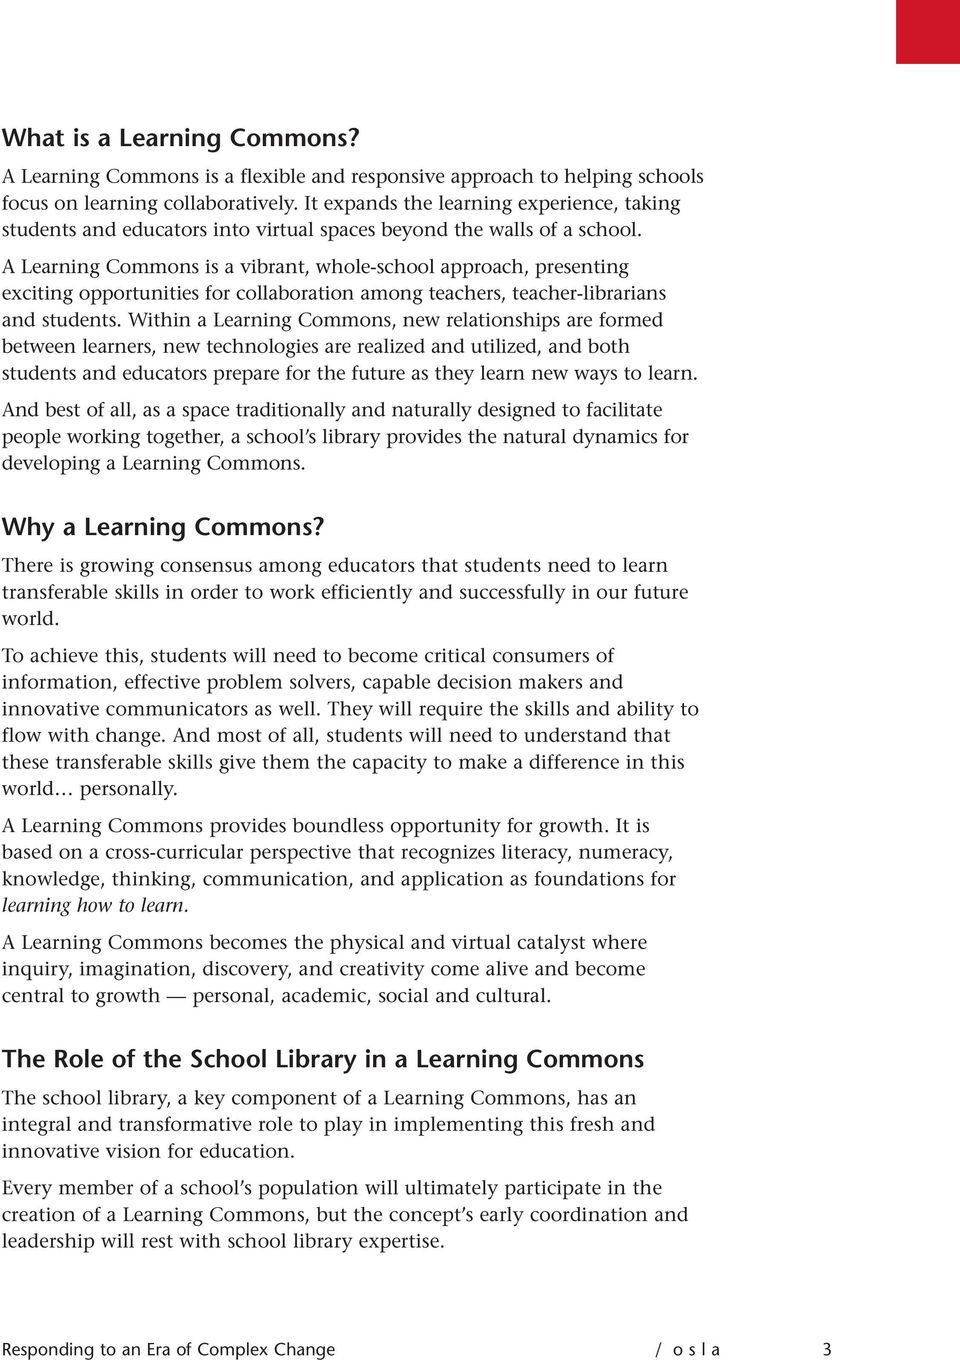 A Learning Commons is a vibrant, whole-school approach, presenting exciting opportunities for collaboration among teachers, teacher-librarians and students.